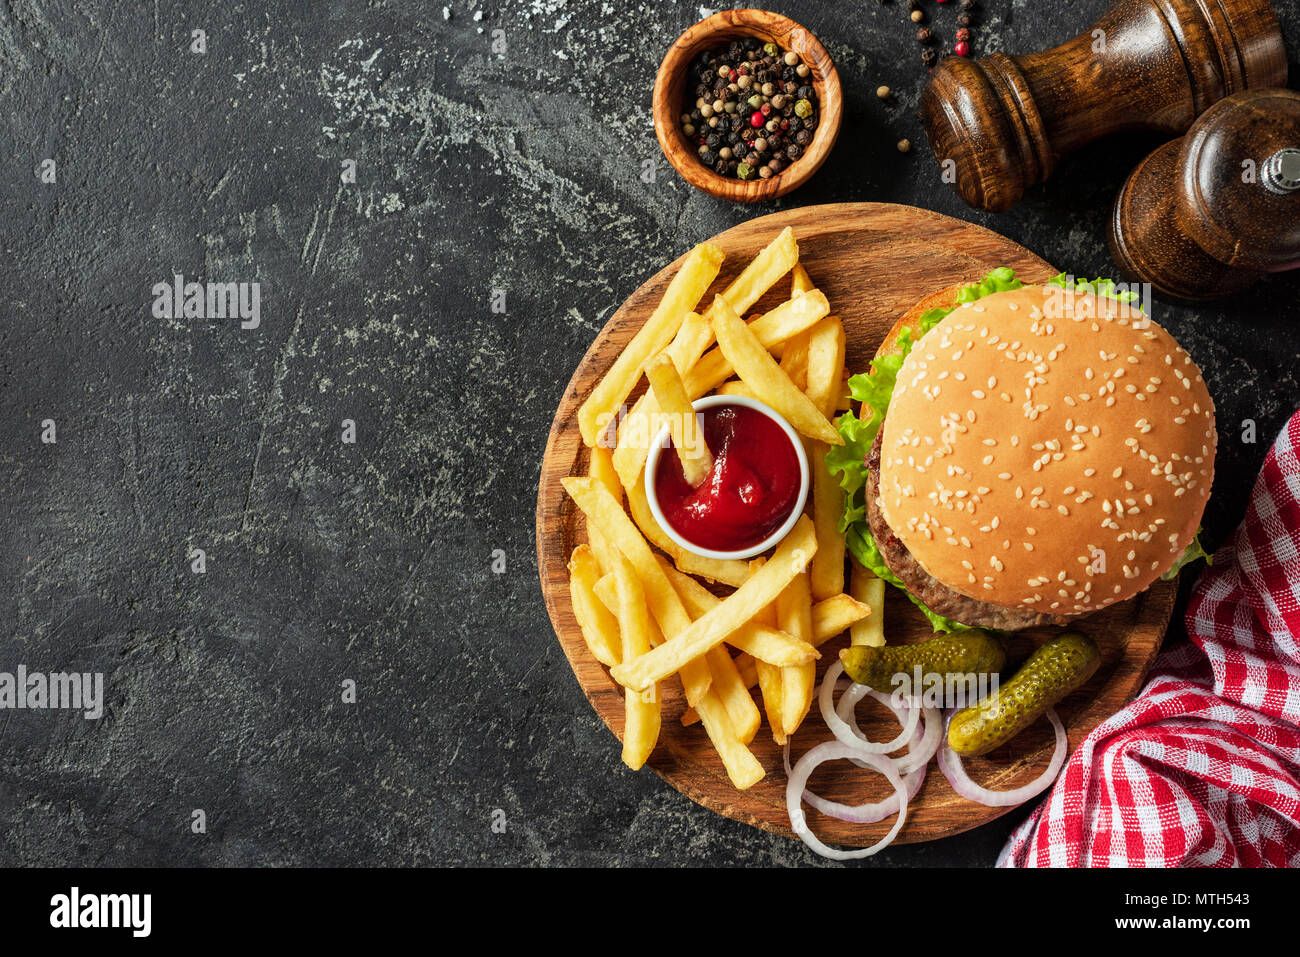 Burger and fries on wooden board on dark stone background. Homemade burger or cheeseburger, french fries and ketchup. Tasty sandwich. Top view with co - Stock Image